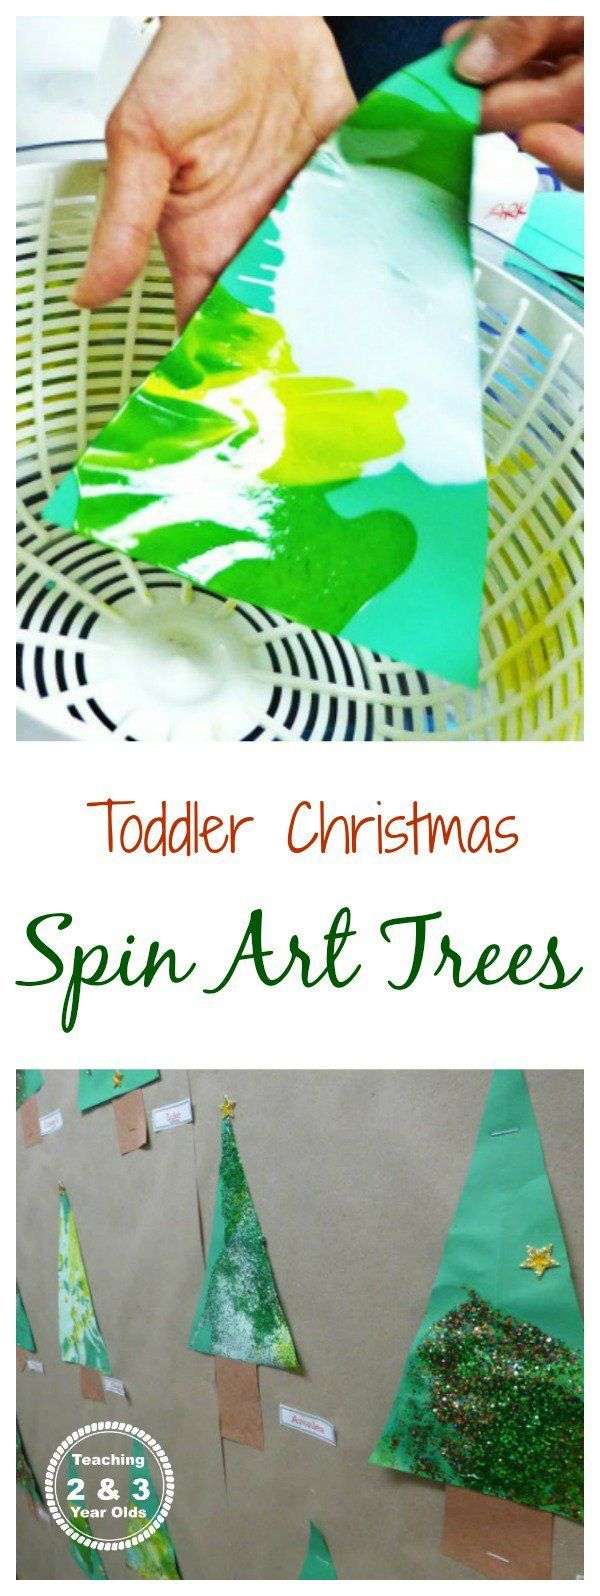 Easy Christmas spin art trees for toddlers - process art that also makes a nice classroom bulletin board display!